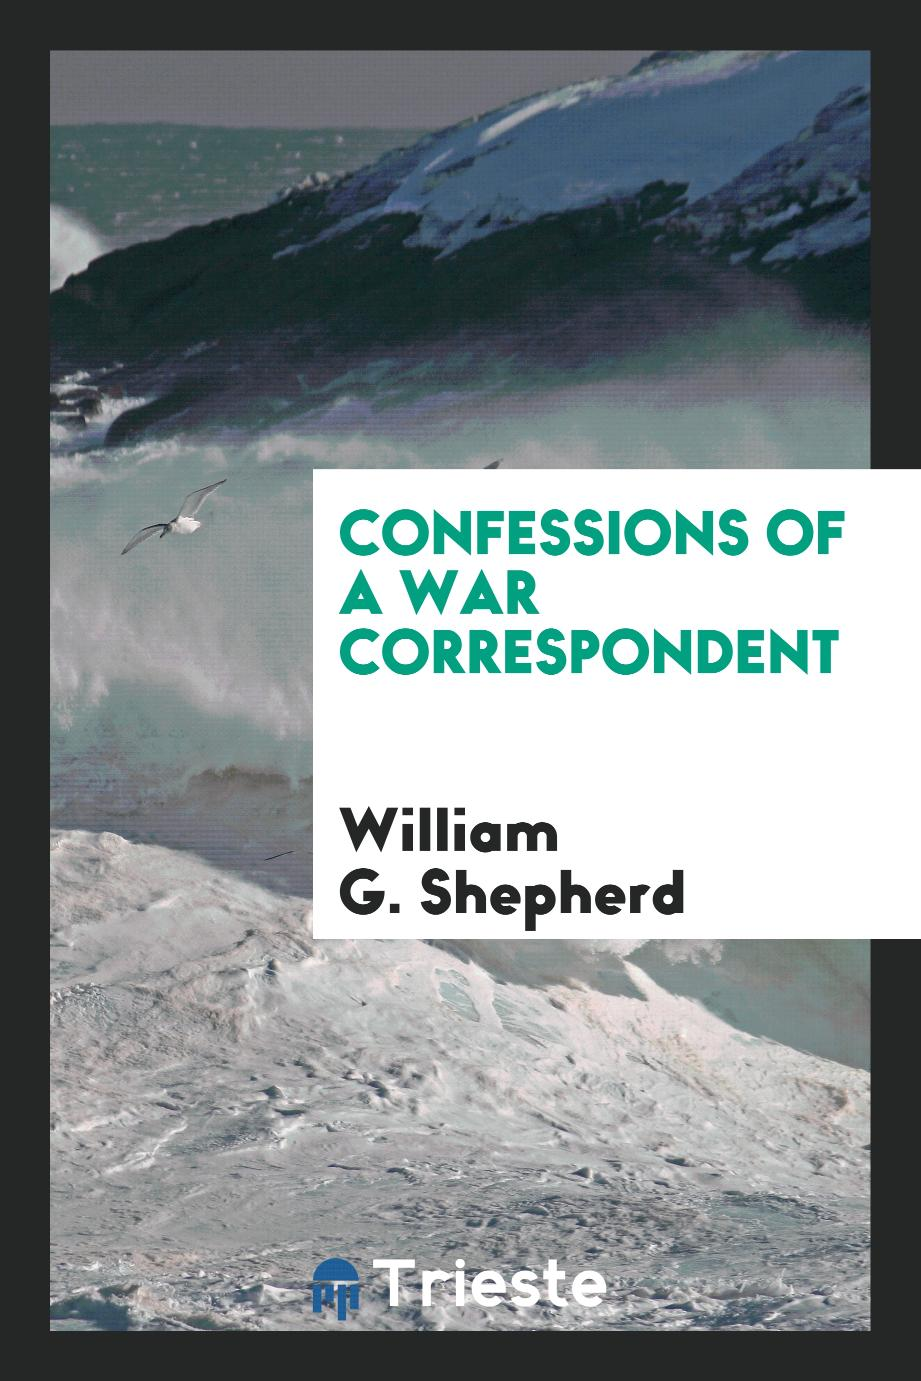 William G. Shepherd - Confessions of a War Correspondent